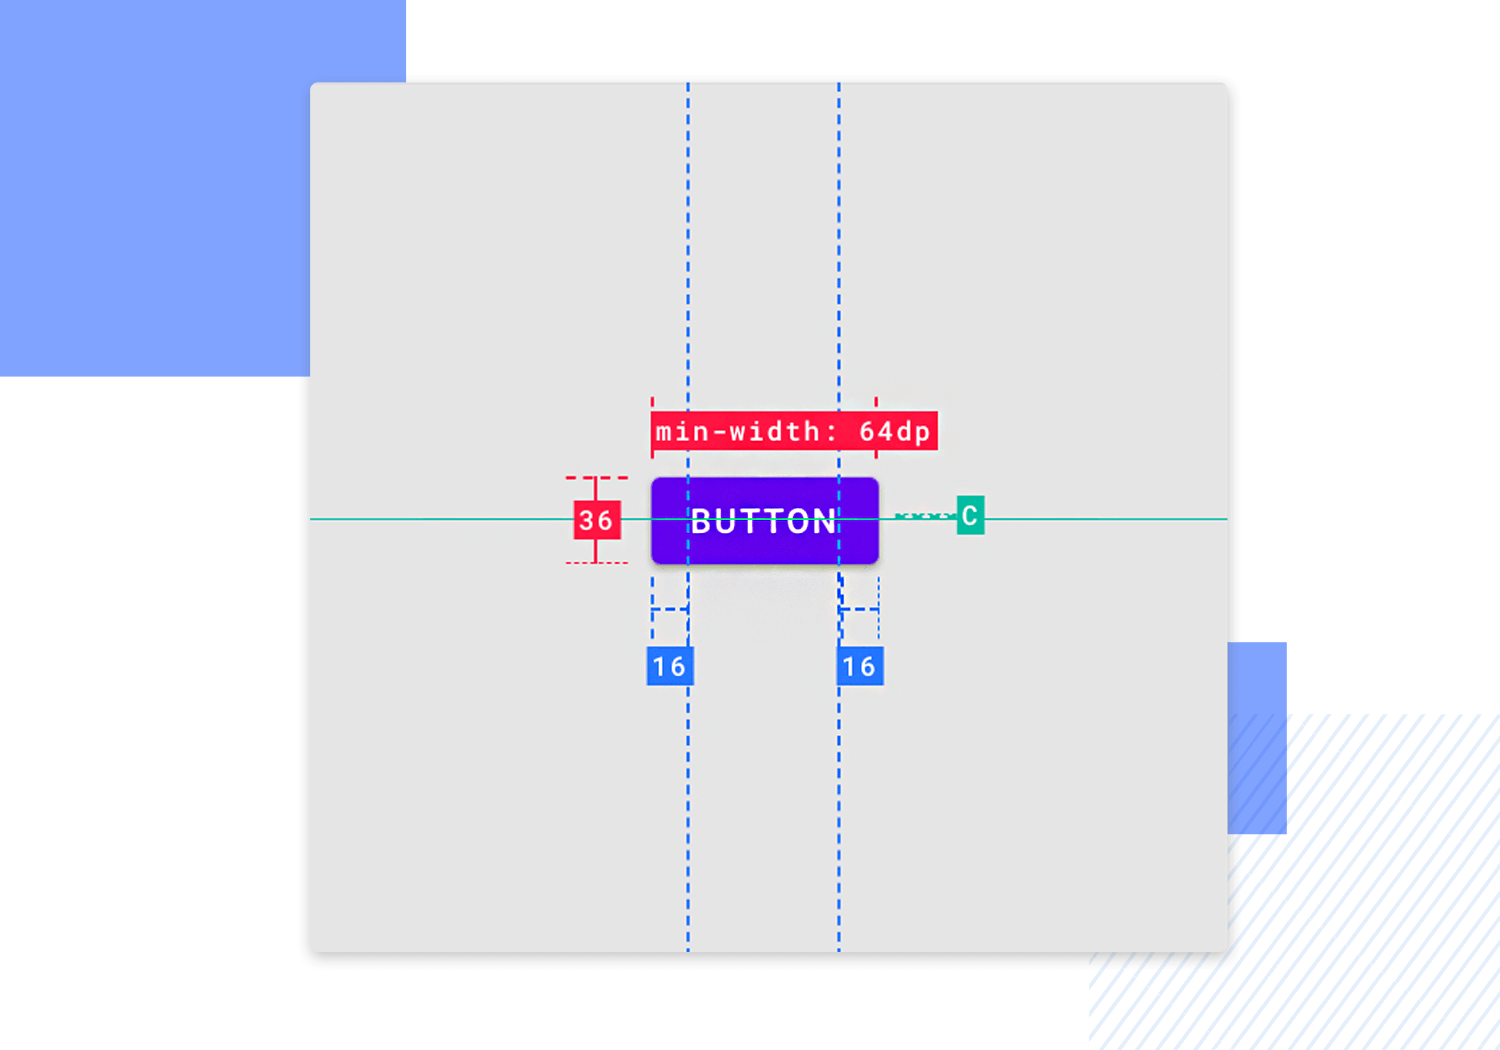 material design - minimum size requirements for buttons